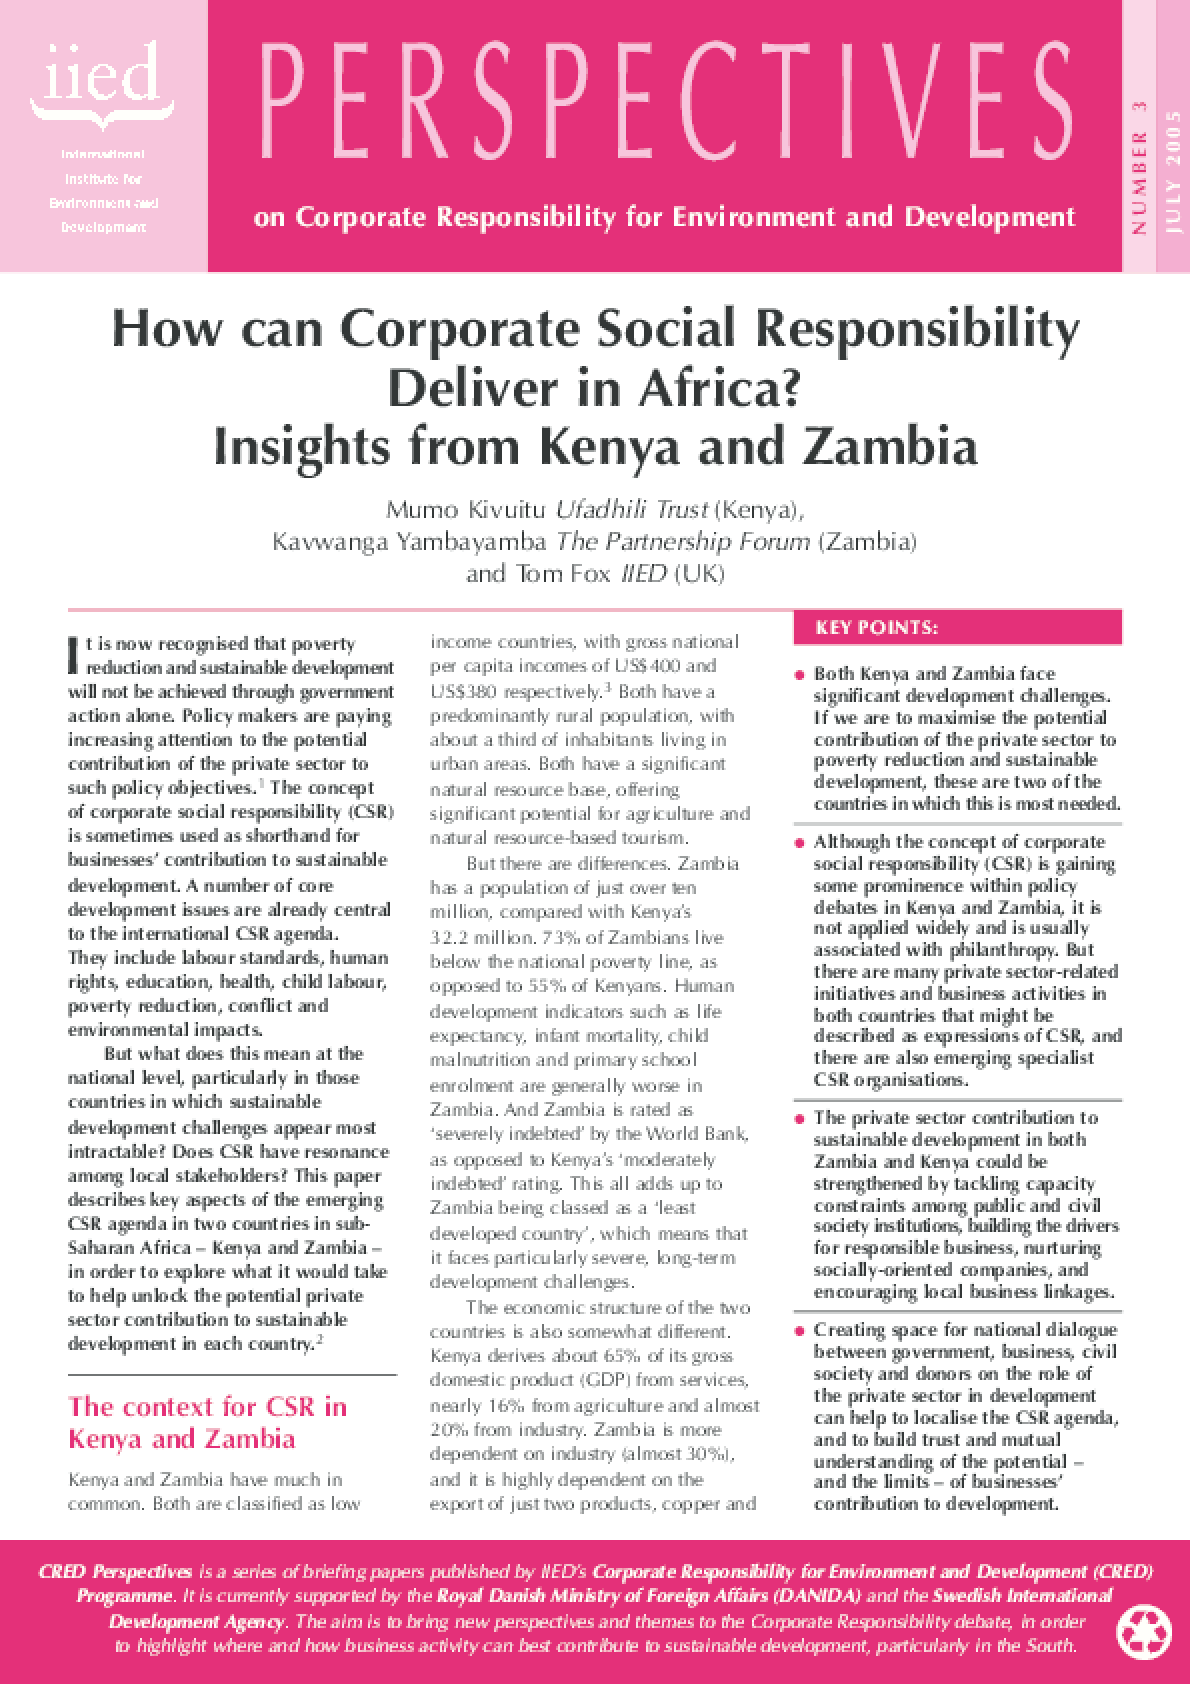 How Can Corporate Social Responsibility Deliver in Africa? Insights from Kenya and Zambia